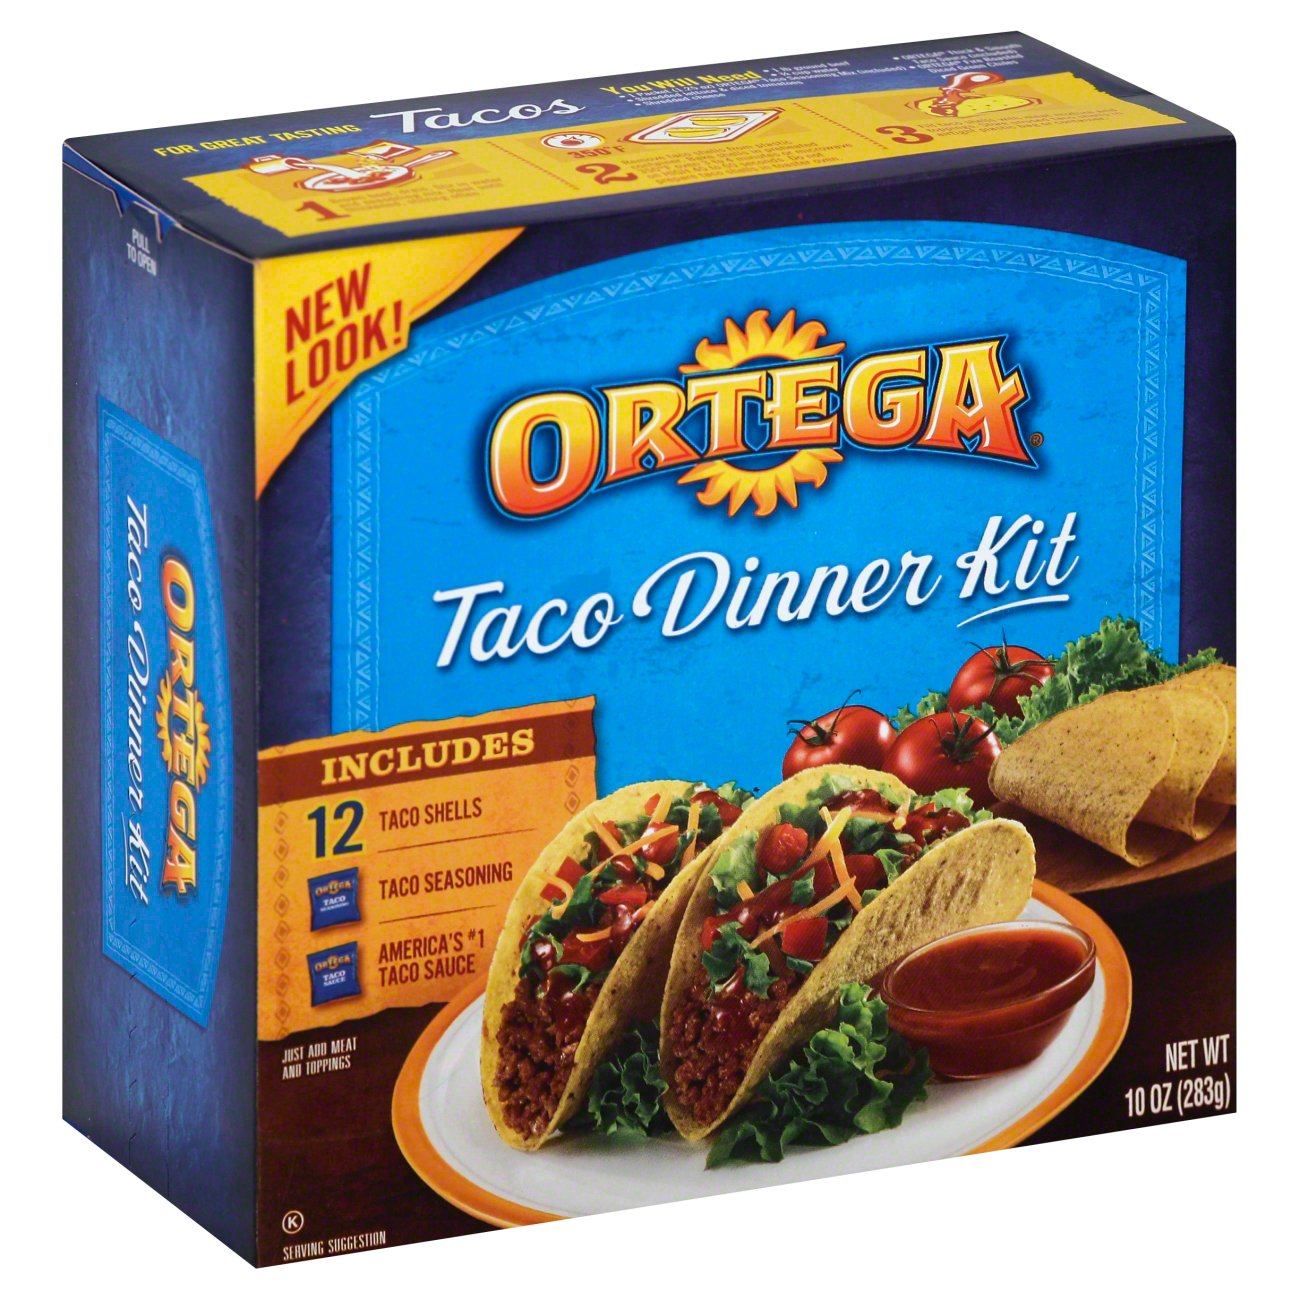 Ortega Taco Dinner Kit Shop Pantry Meals At H E B